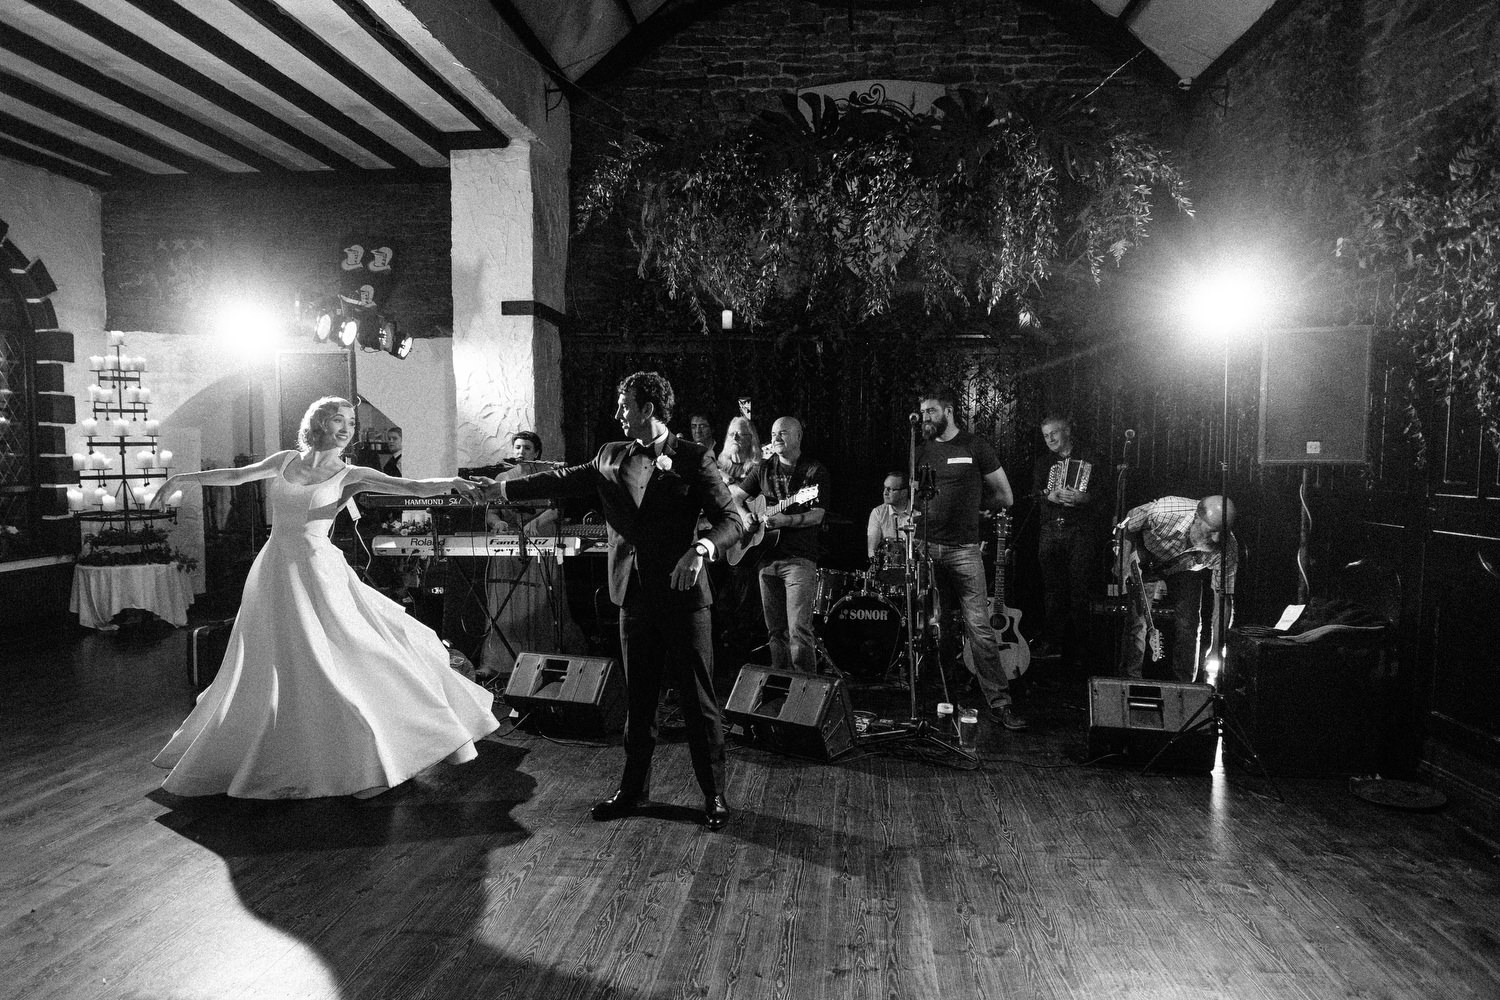 000000000000000000000202_bride_style_vintage_photography_david_mcclelland_ireland_castle_hollywood_kinnity_wedding_photographer_fujifilm